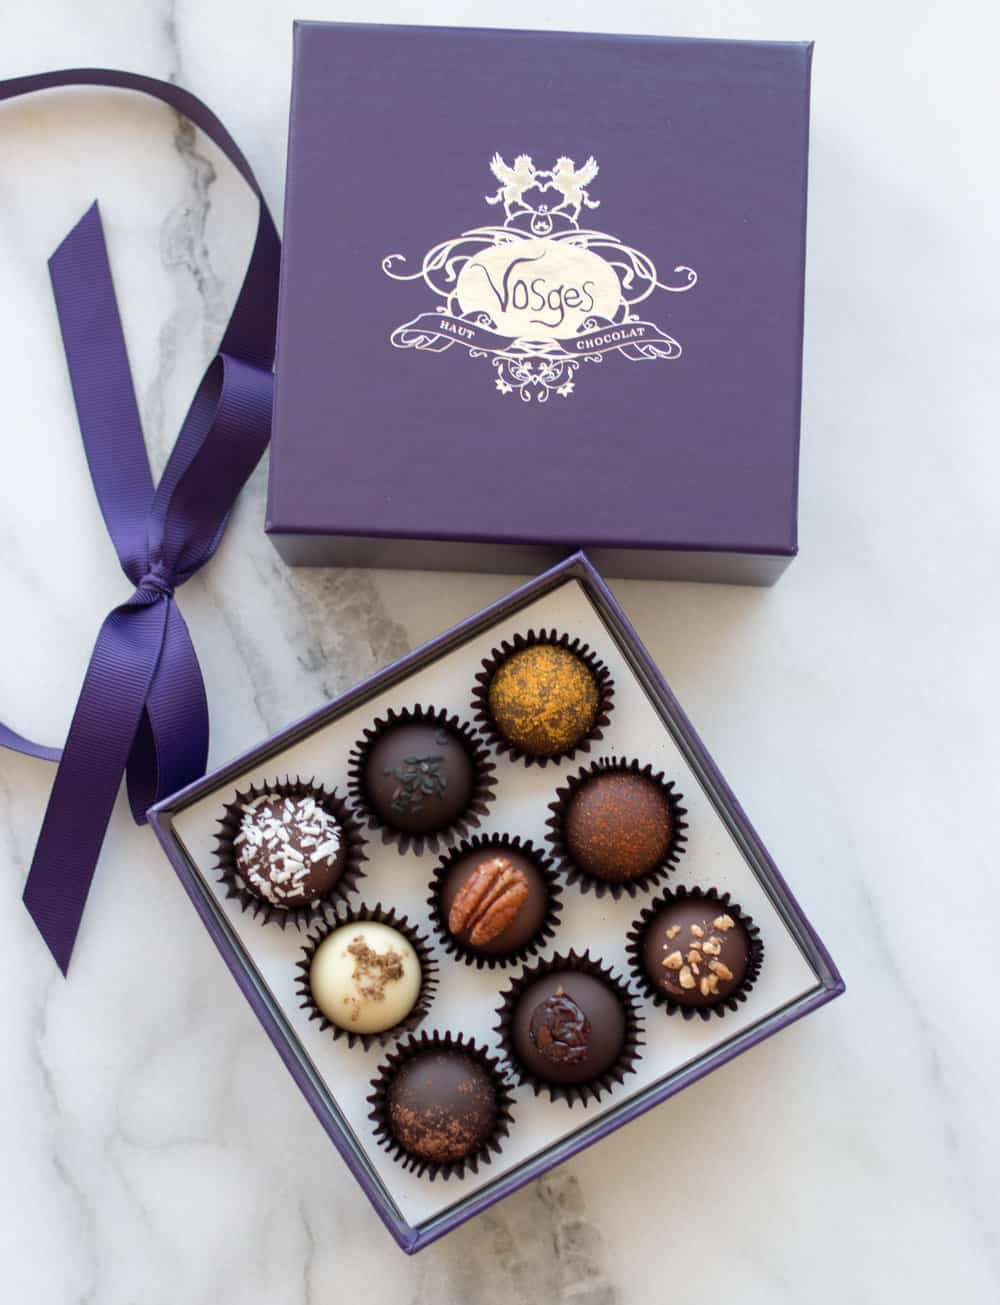 How to eat a truffle Vosges Chocolate @everydayparisian